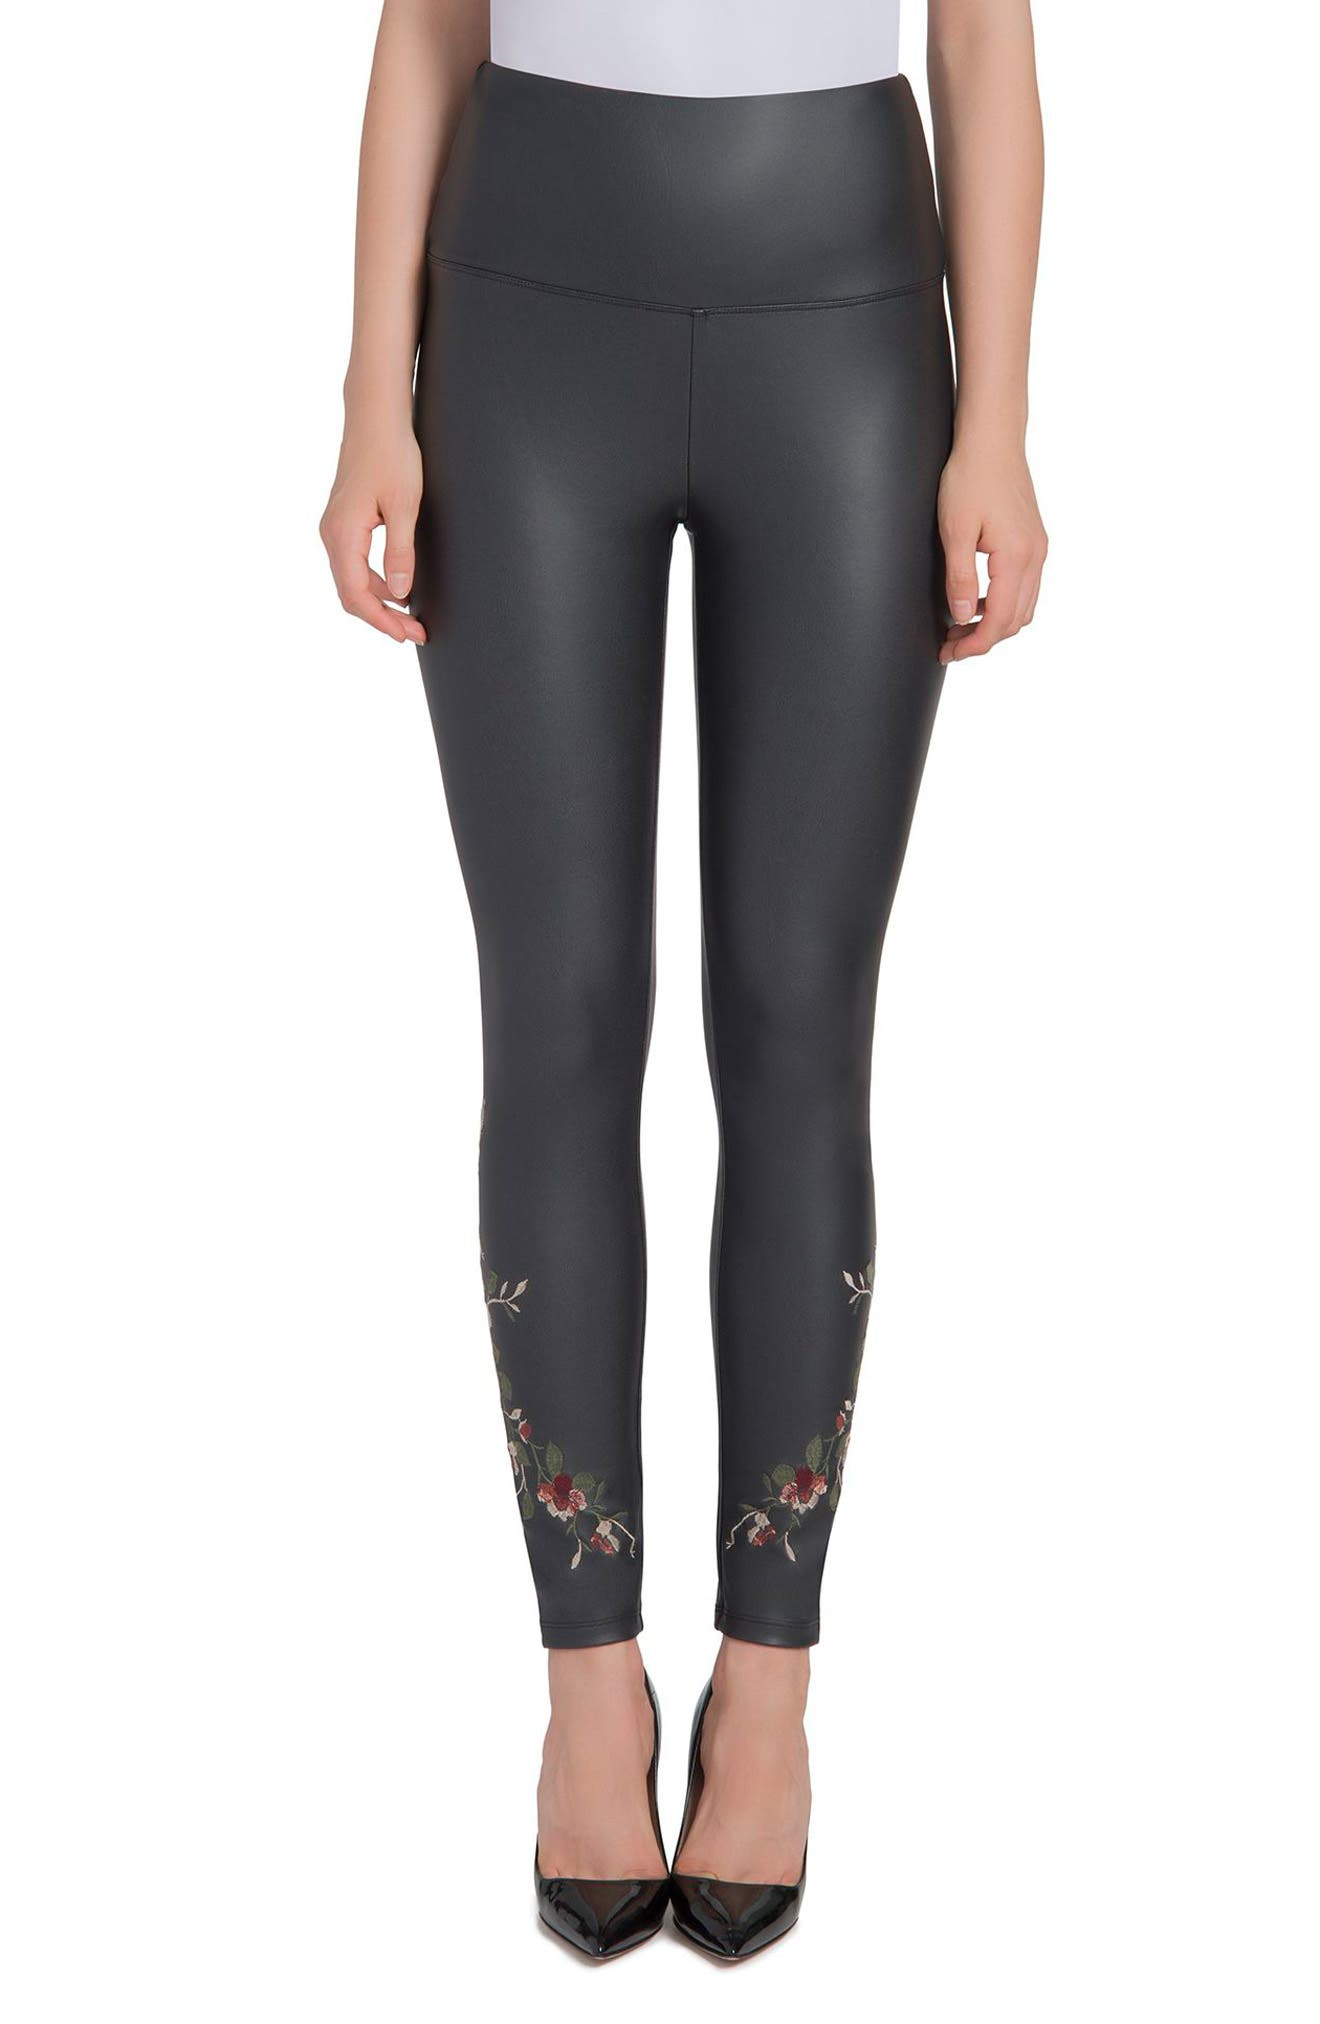 Lyssé Embroidered Faux Leather High Waist Leggings